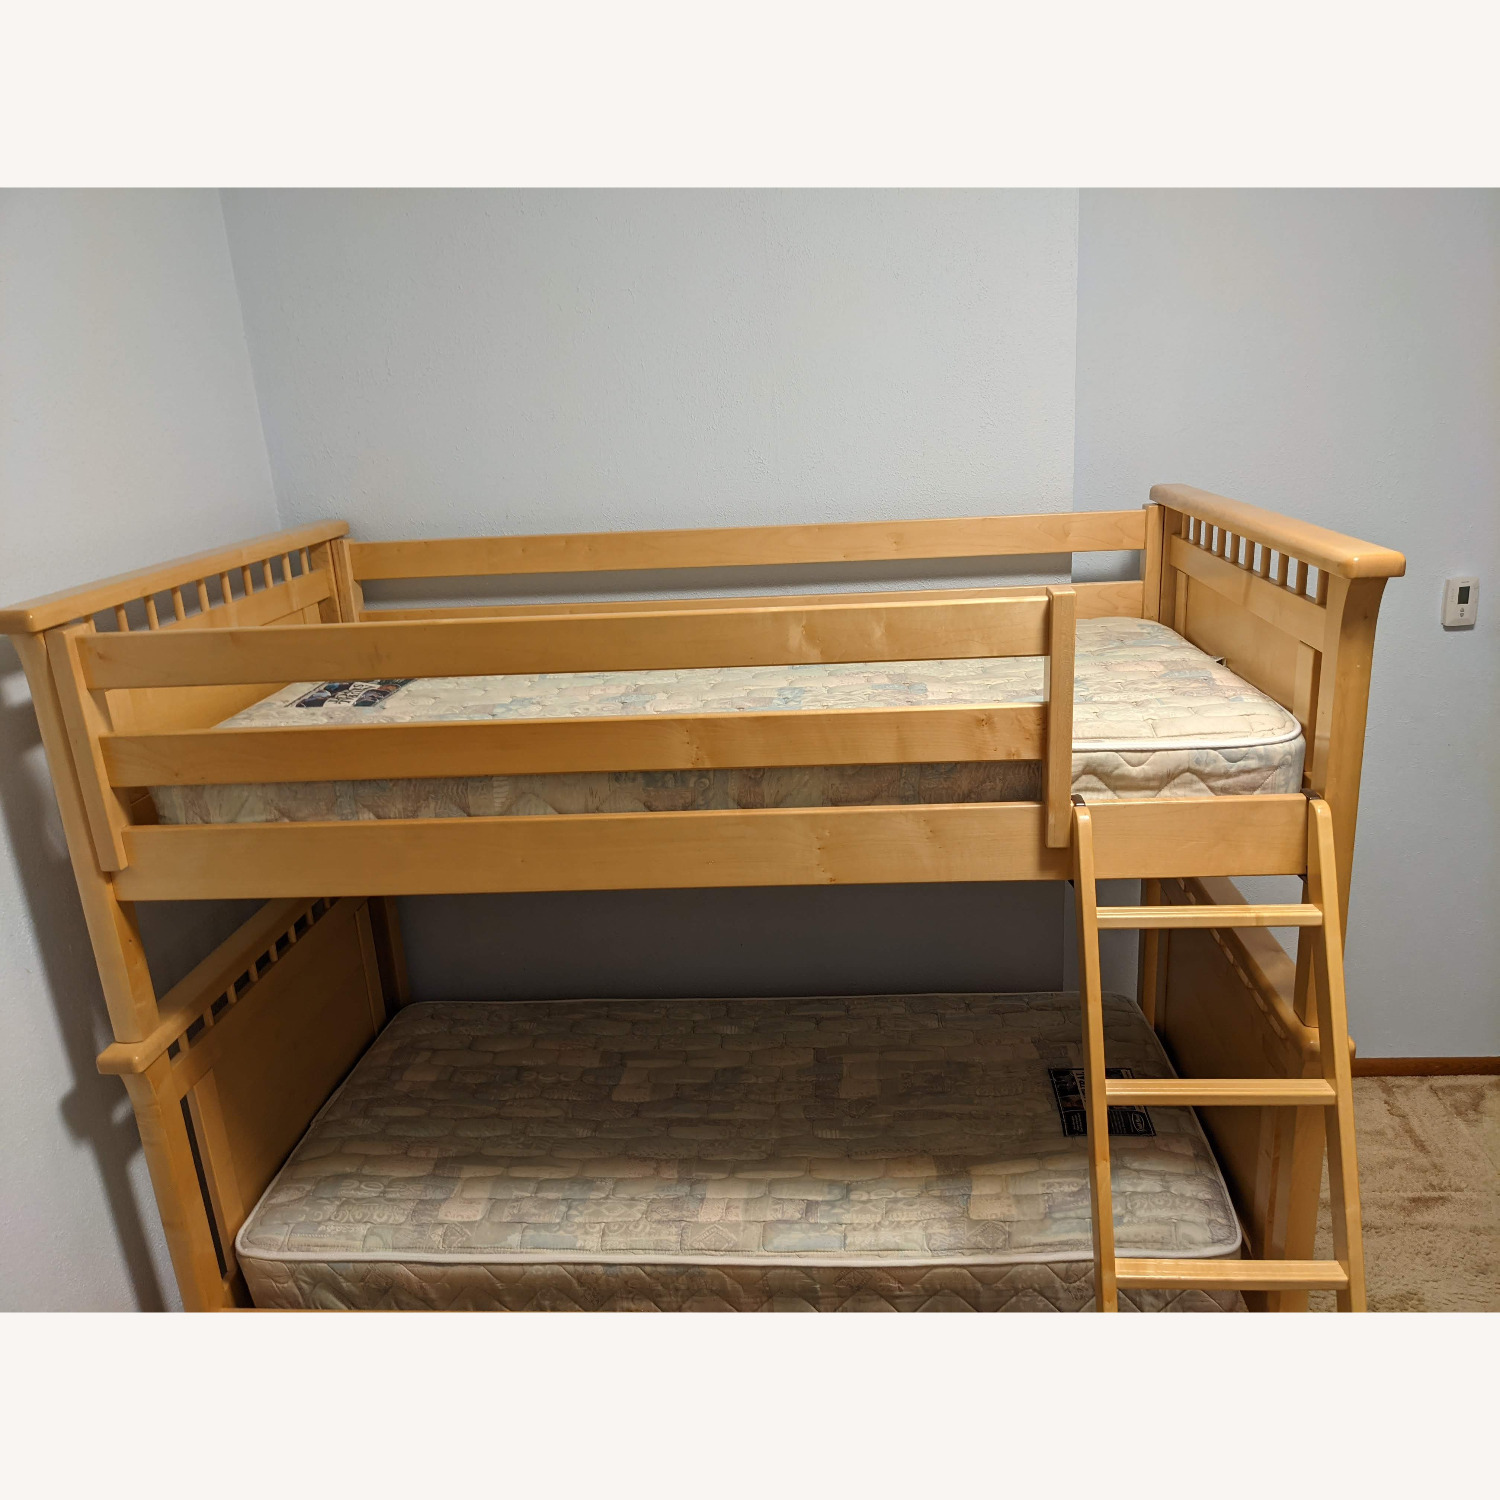 Solid Wood Bunk Beds w/ Under Bed Storage Drawers - image-5